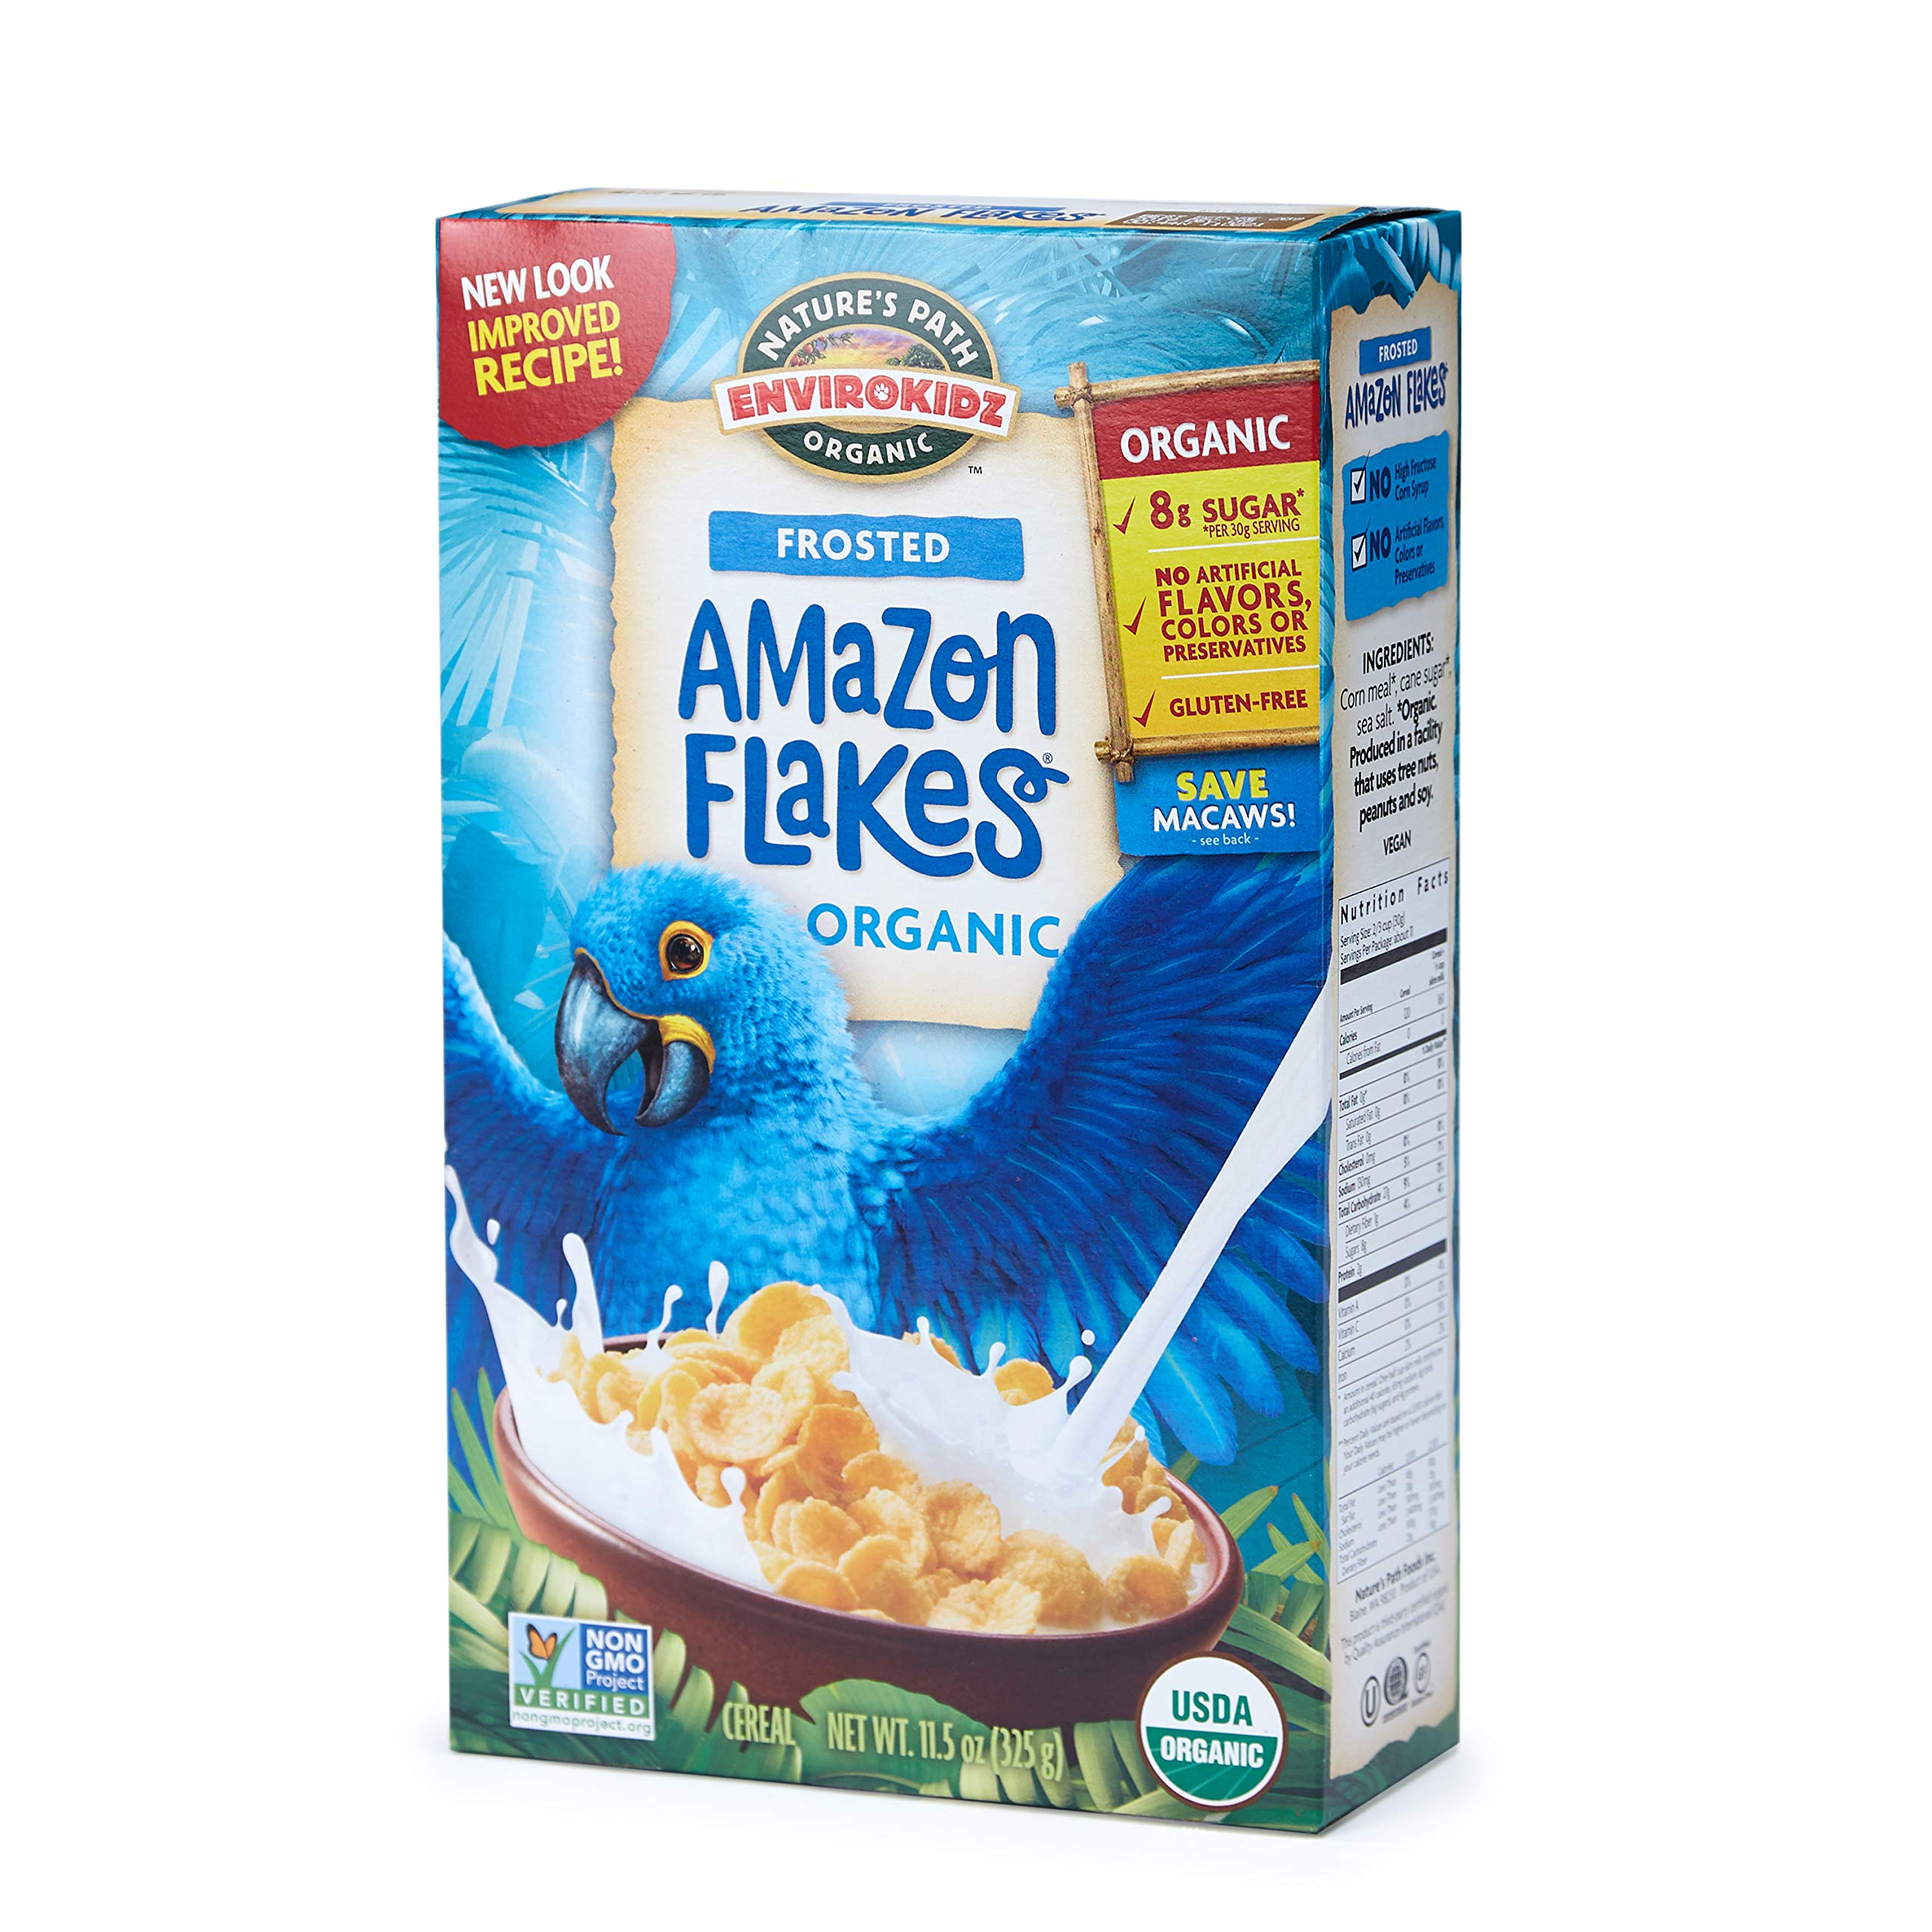 Nature's Path EnviroKidz Amazon Frosted Flakes Cereal, Healthy, Organic, Gluten-Free, 11.5 Ounce Box (Pack of 6) by EnviroKidz